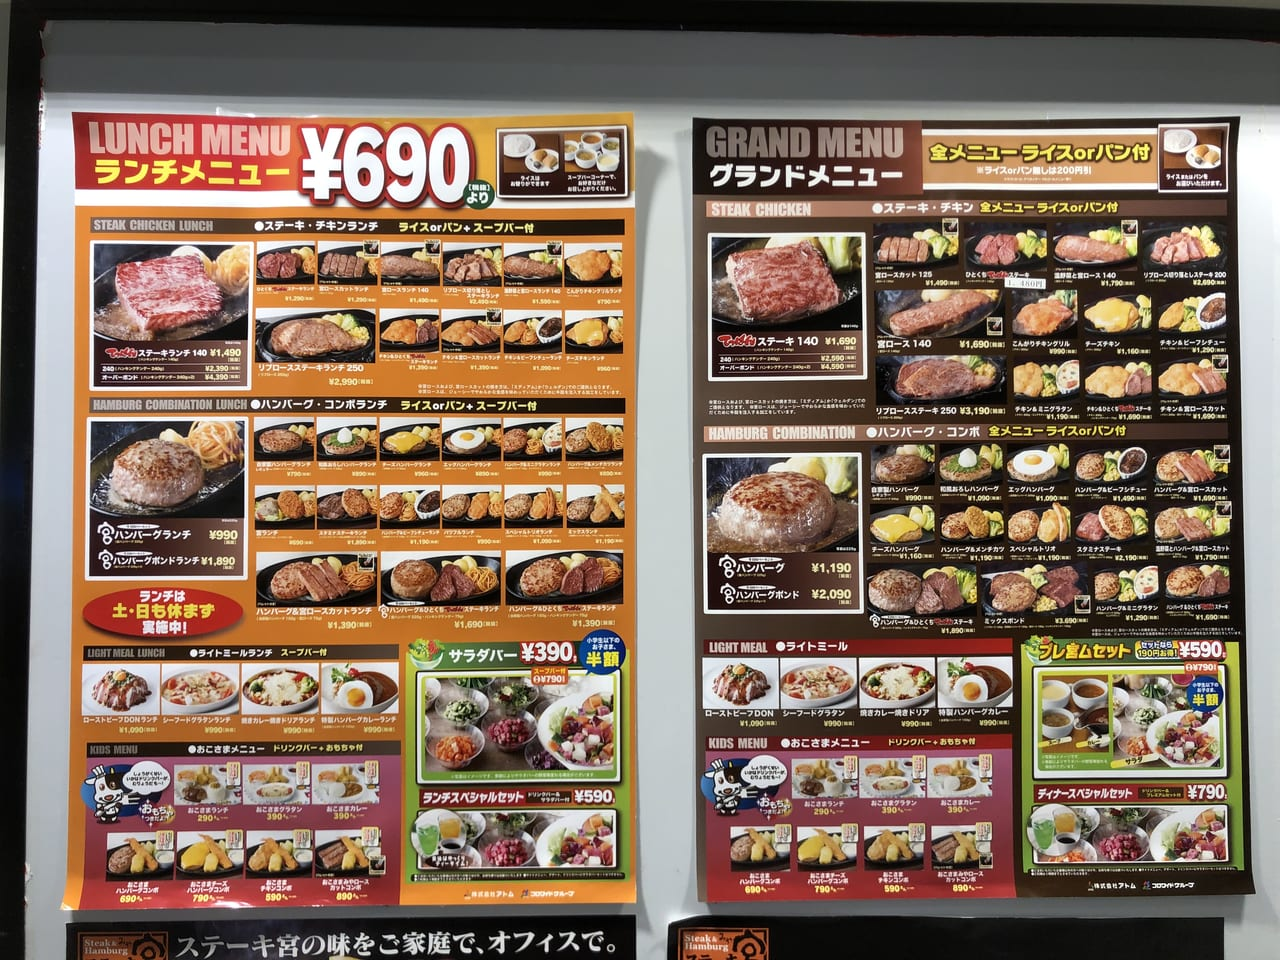 Go to eat ステーキ 宮